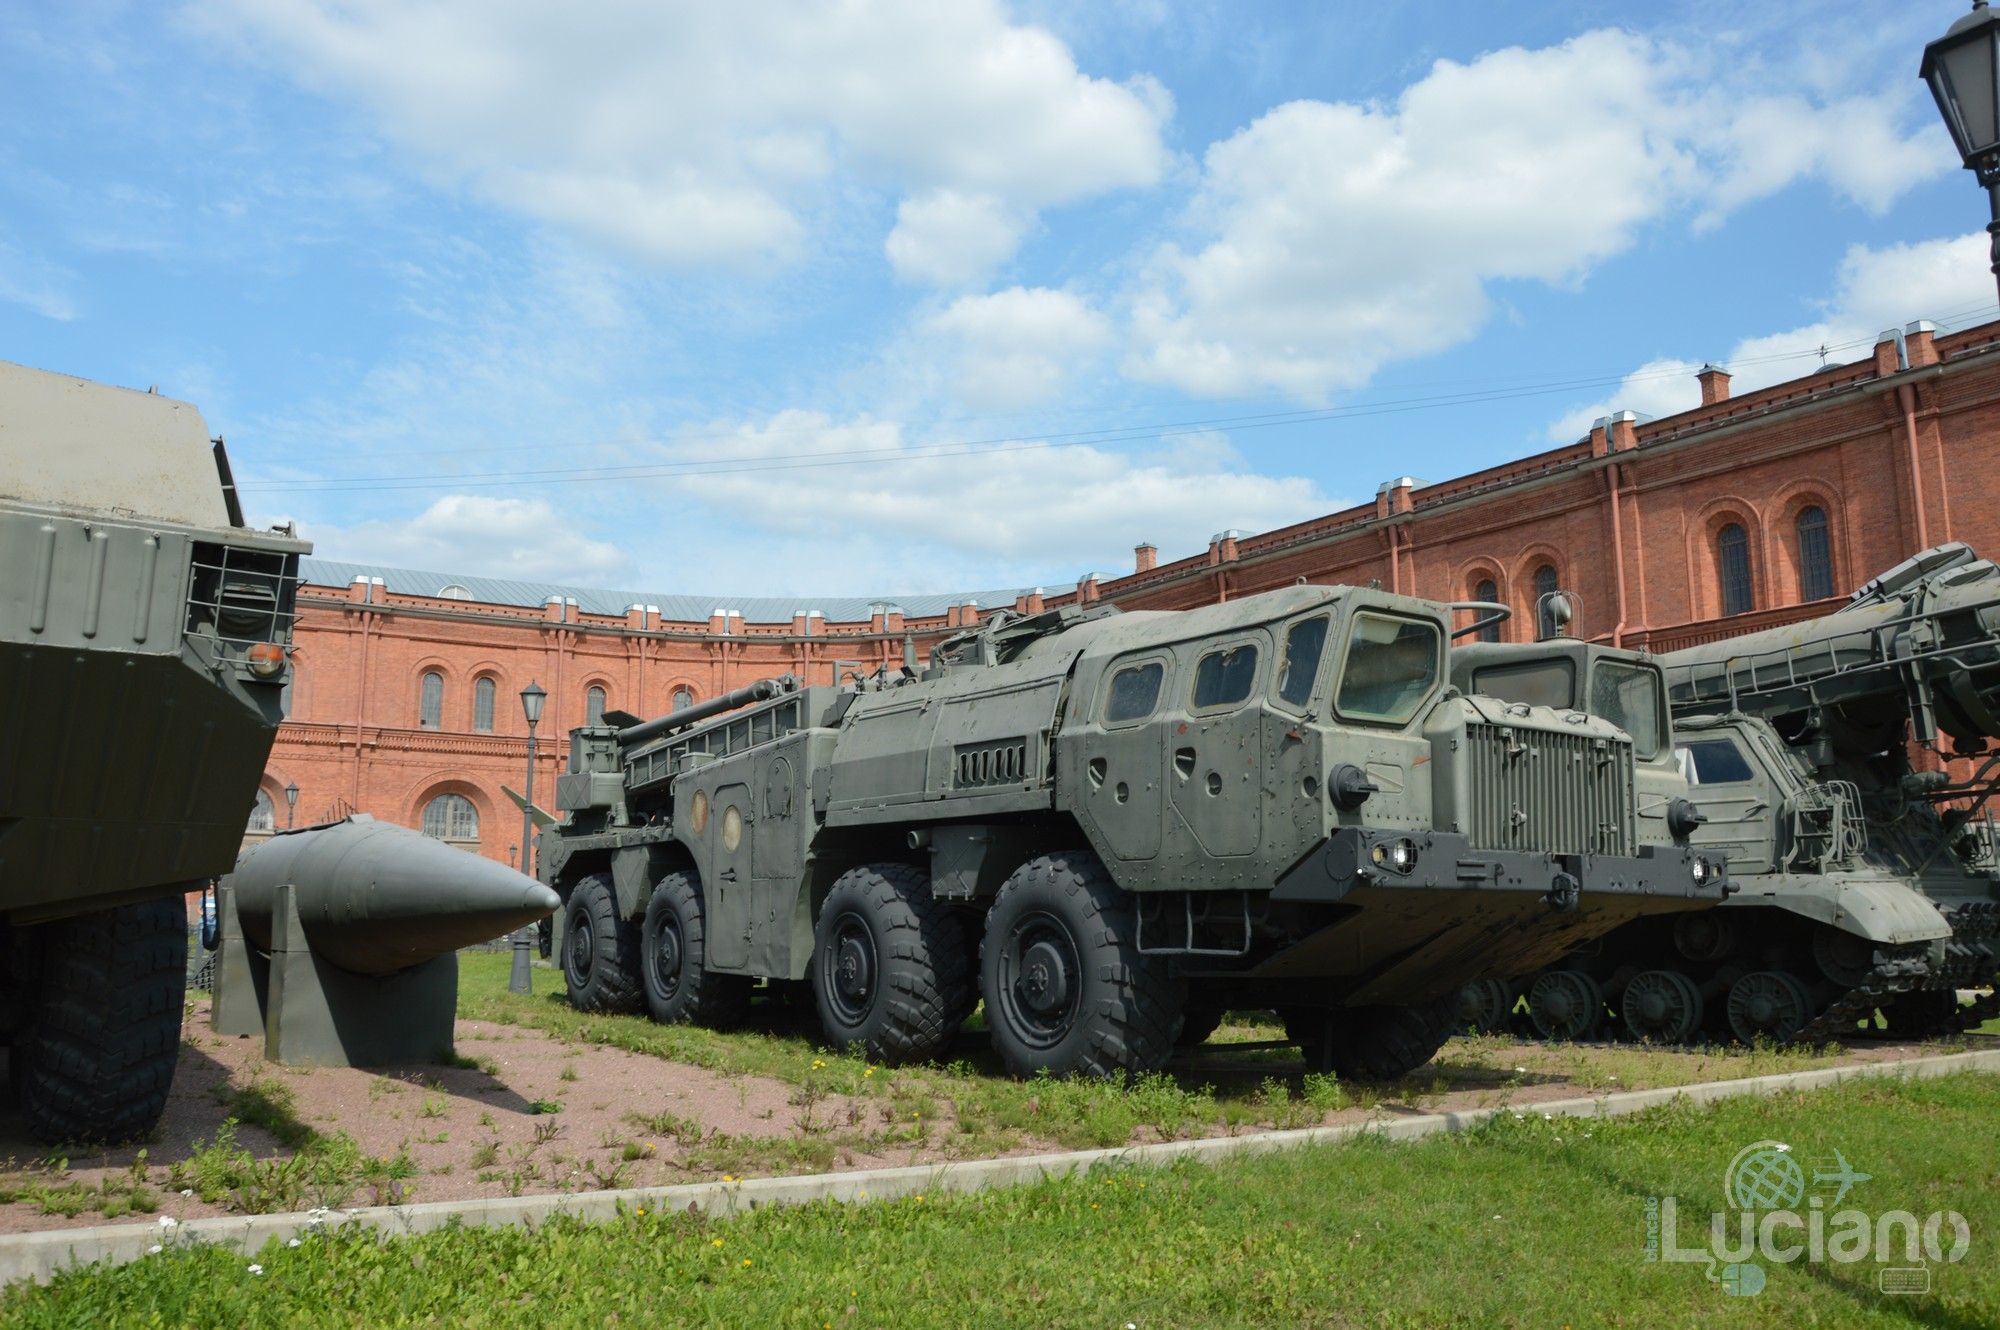 Military-Historical-Museum-of-Artillery-Engineer-and-Signal-Corps-St-Petersburg-Russia-Luciano-Blancato- (20)